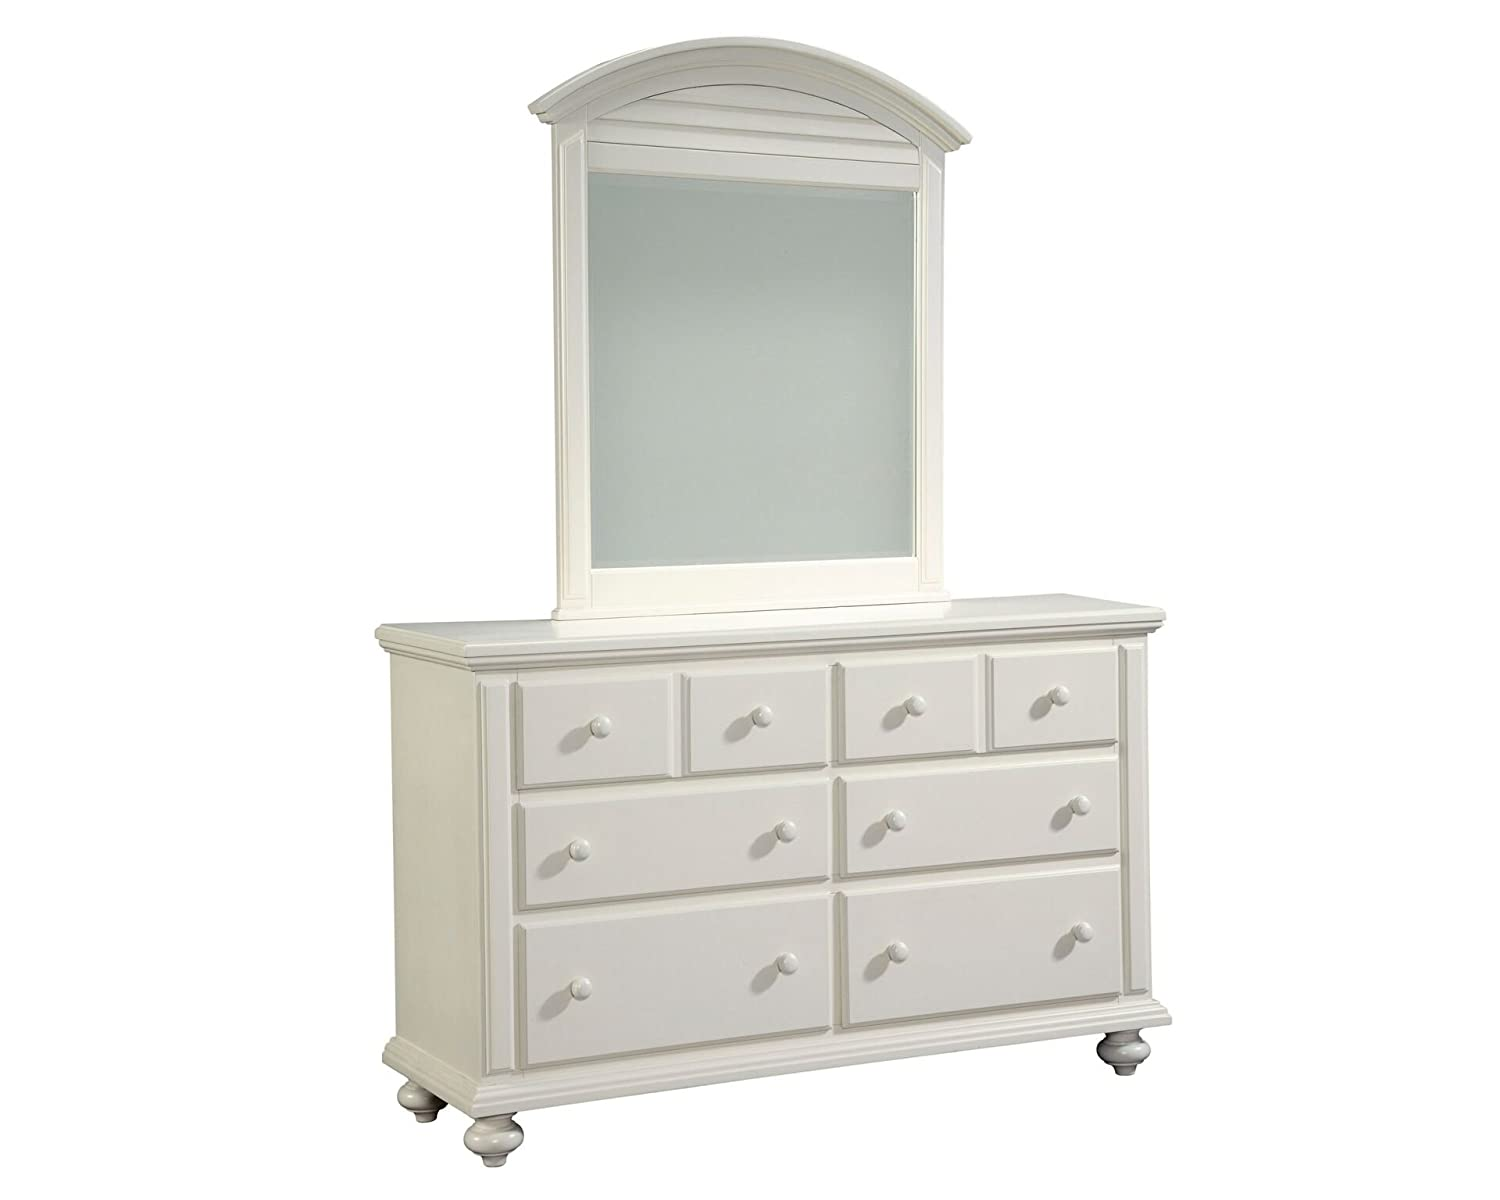 Off White Dresser Amazon.com: Broyhill Seabrooke Dresser Mirror, Cottage - Cream Finish, Off- White: Kitchen u0026 Dining